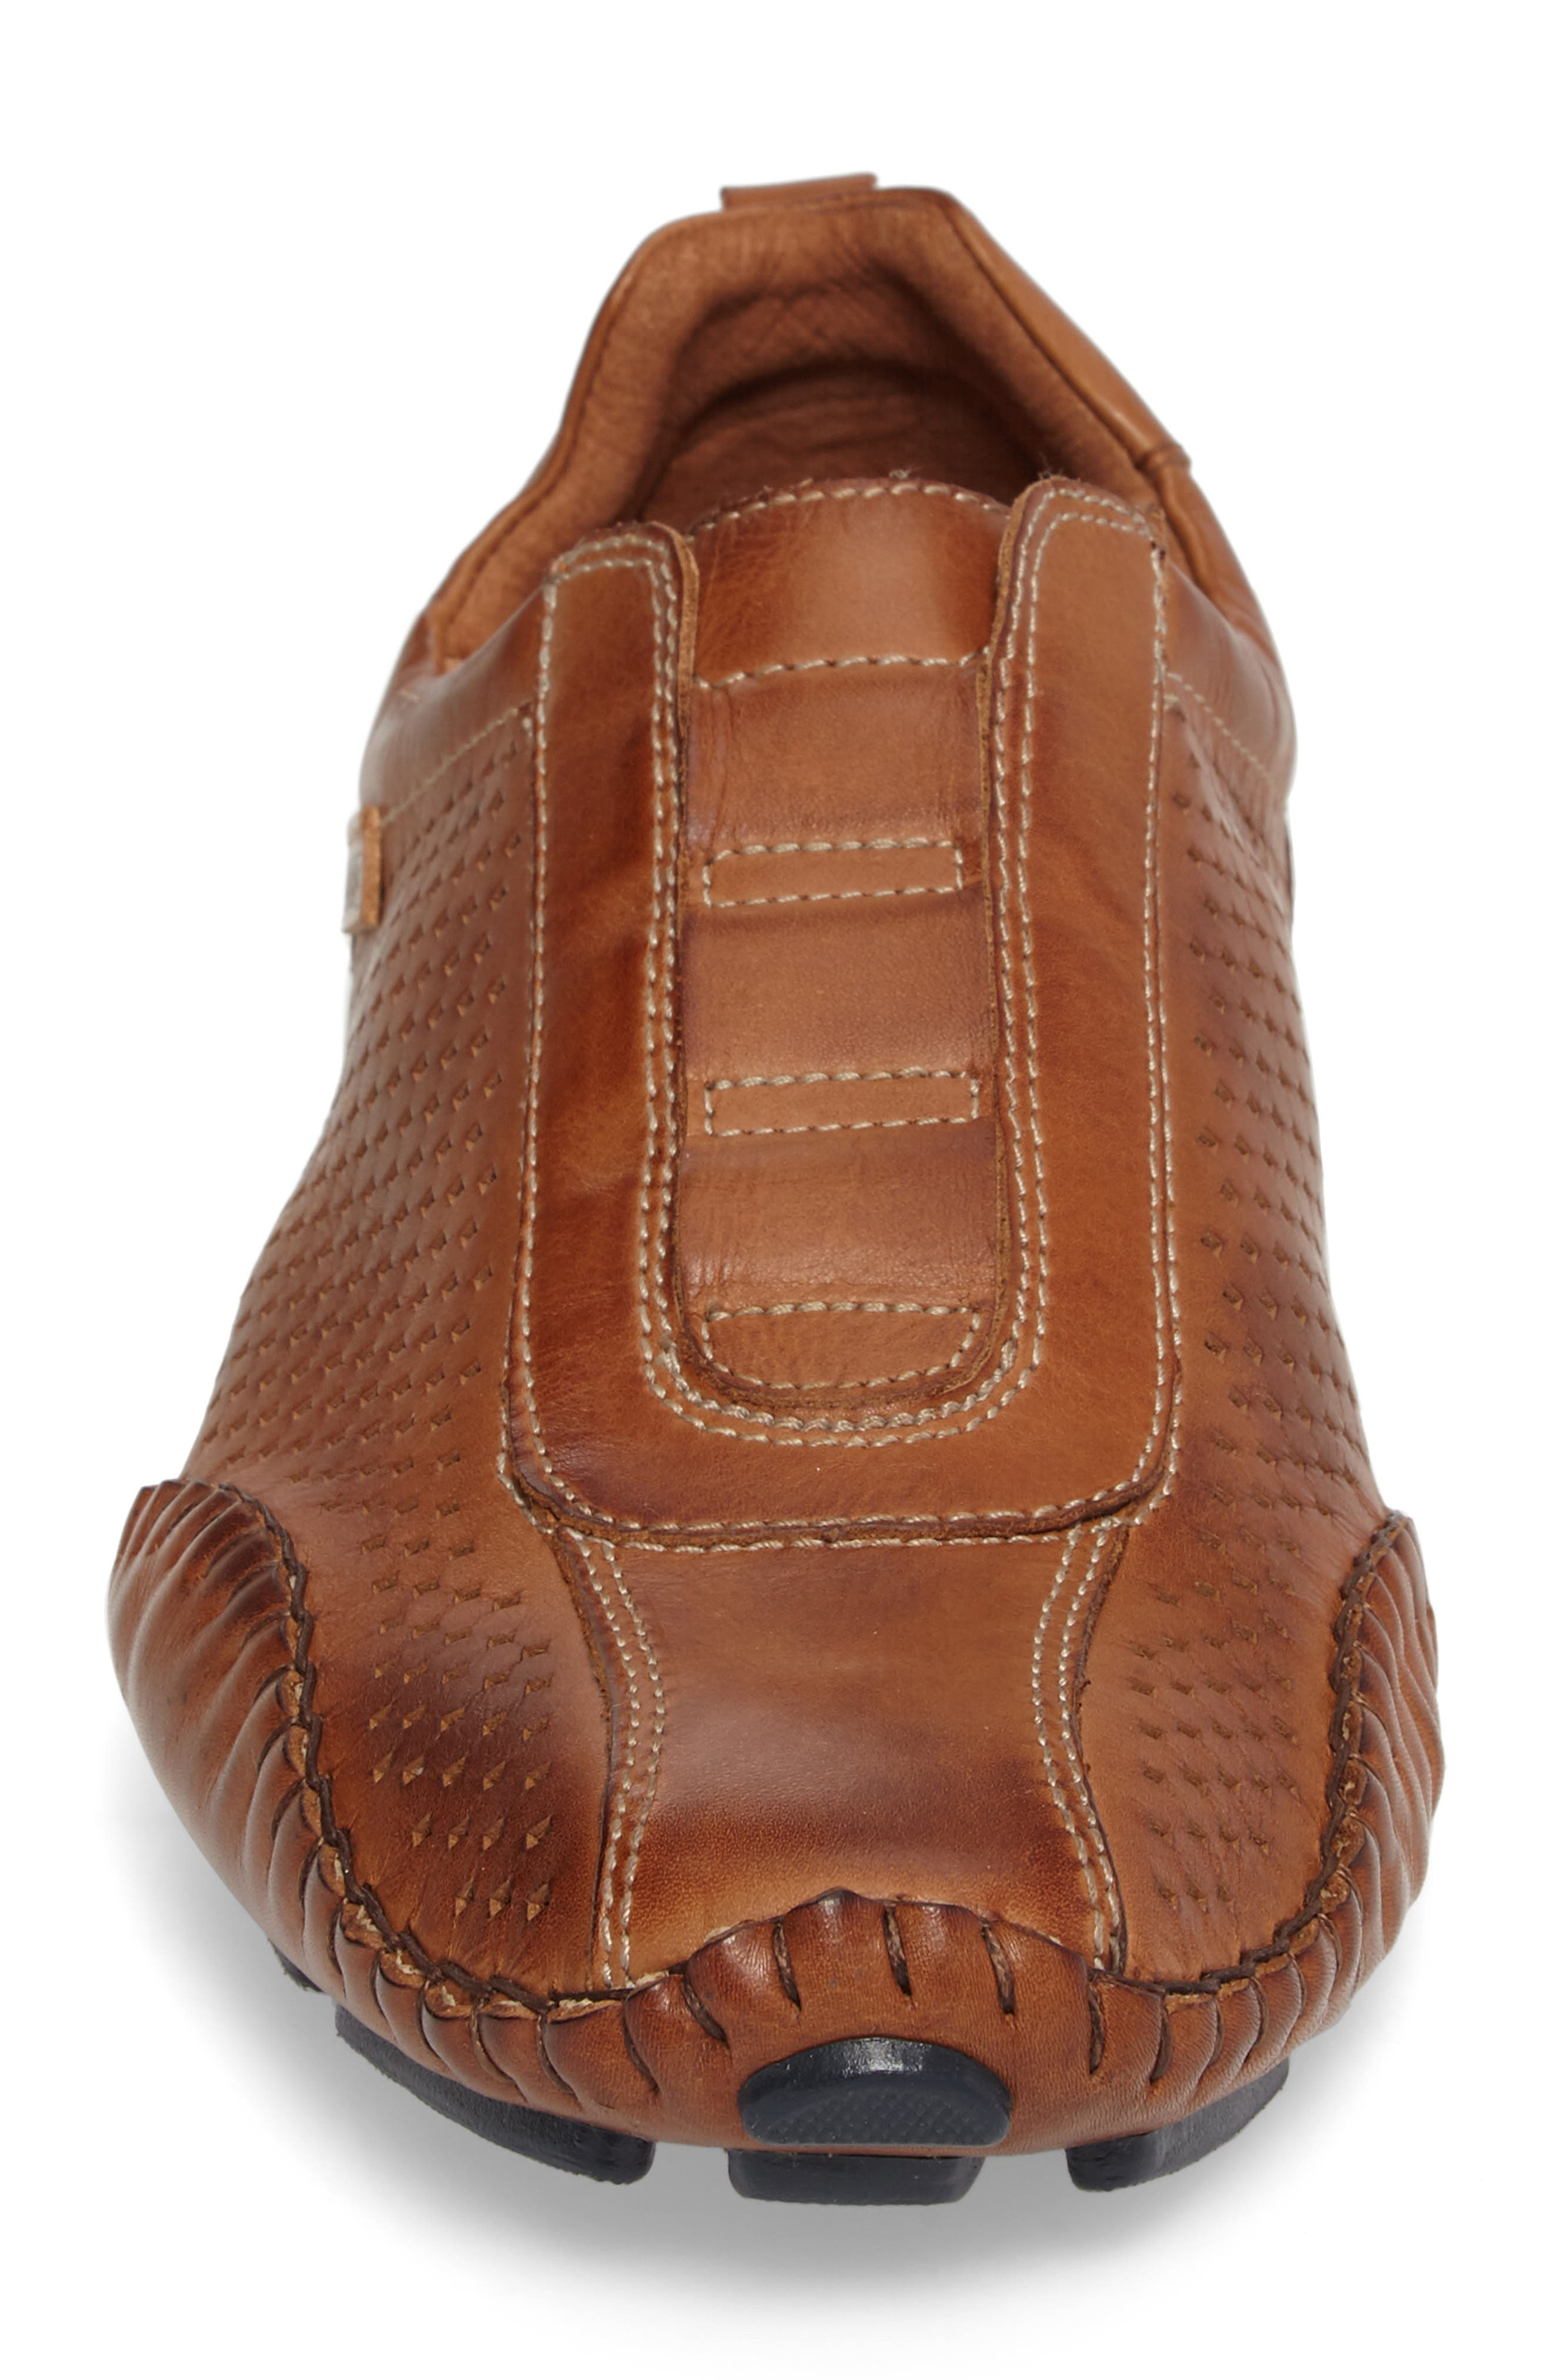 Fuencarral Driving Shoe,                             Alternate thumbnail 4, color,                             Brandy Leather